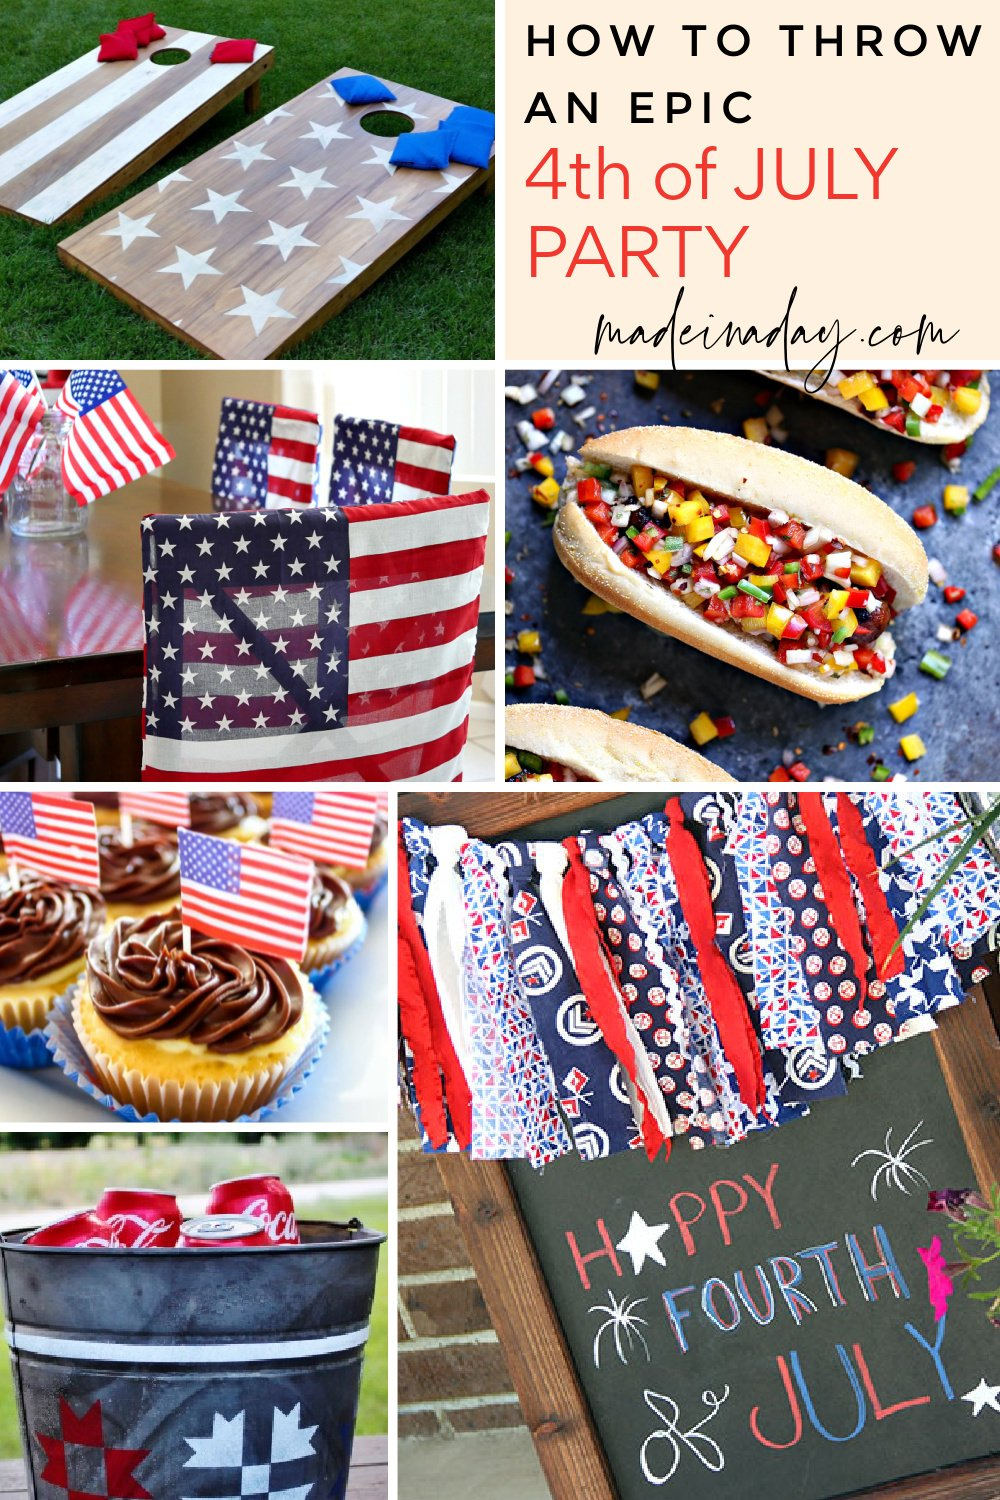 How to Throw a 4th of July Party | Food, Games & More